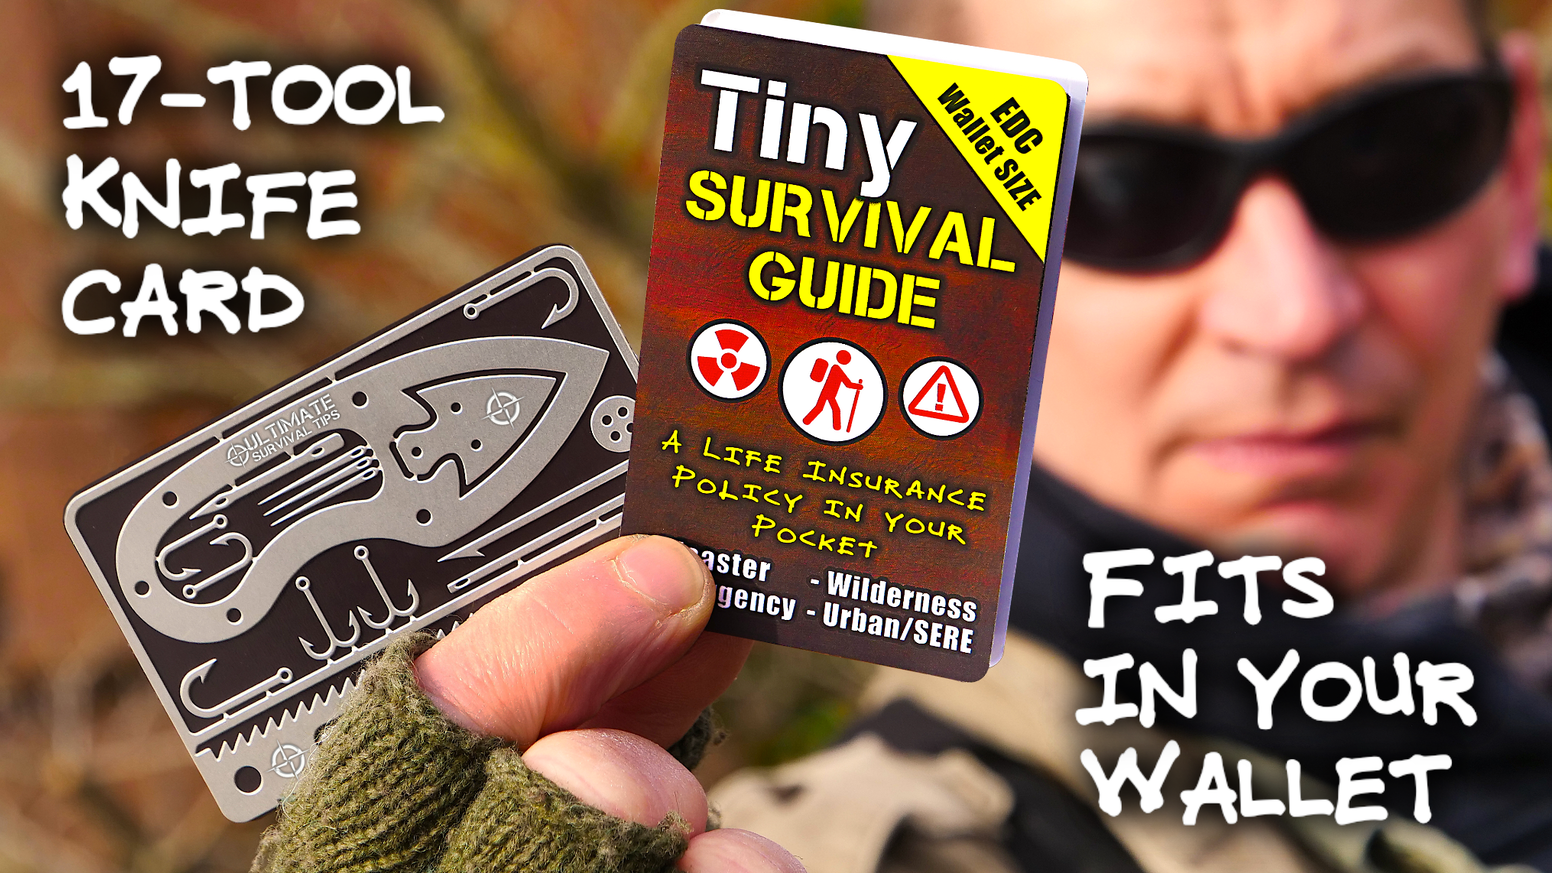 World's Smallest, Emergency / Disaster / Survival Guide, Fits in Your Wallet and Could Save Your Life.  Meet Tiny SURVIVAL GUIDE...